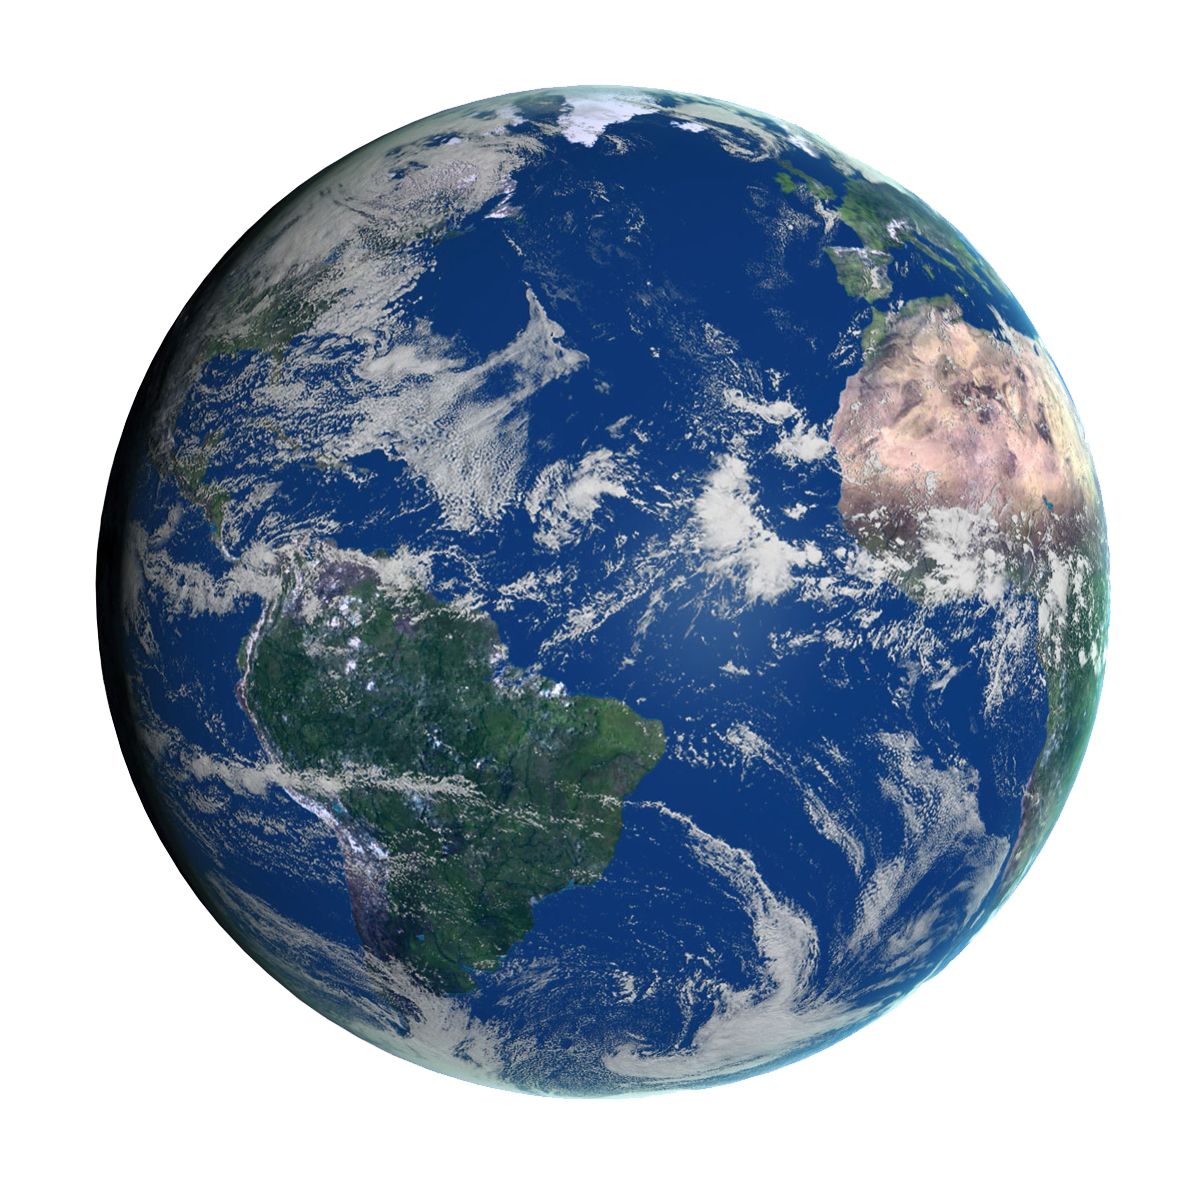 World png image. Earth transparent pictures free